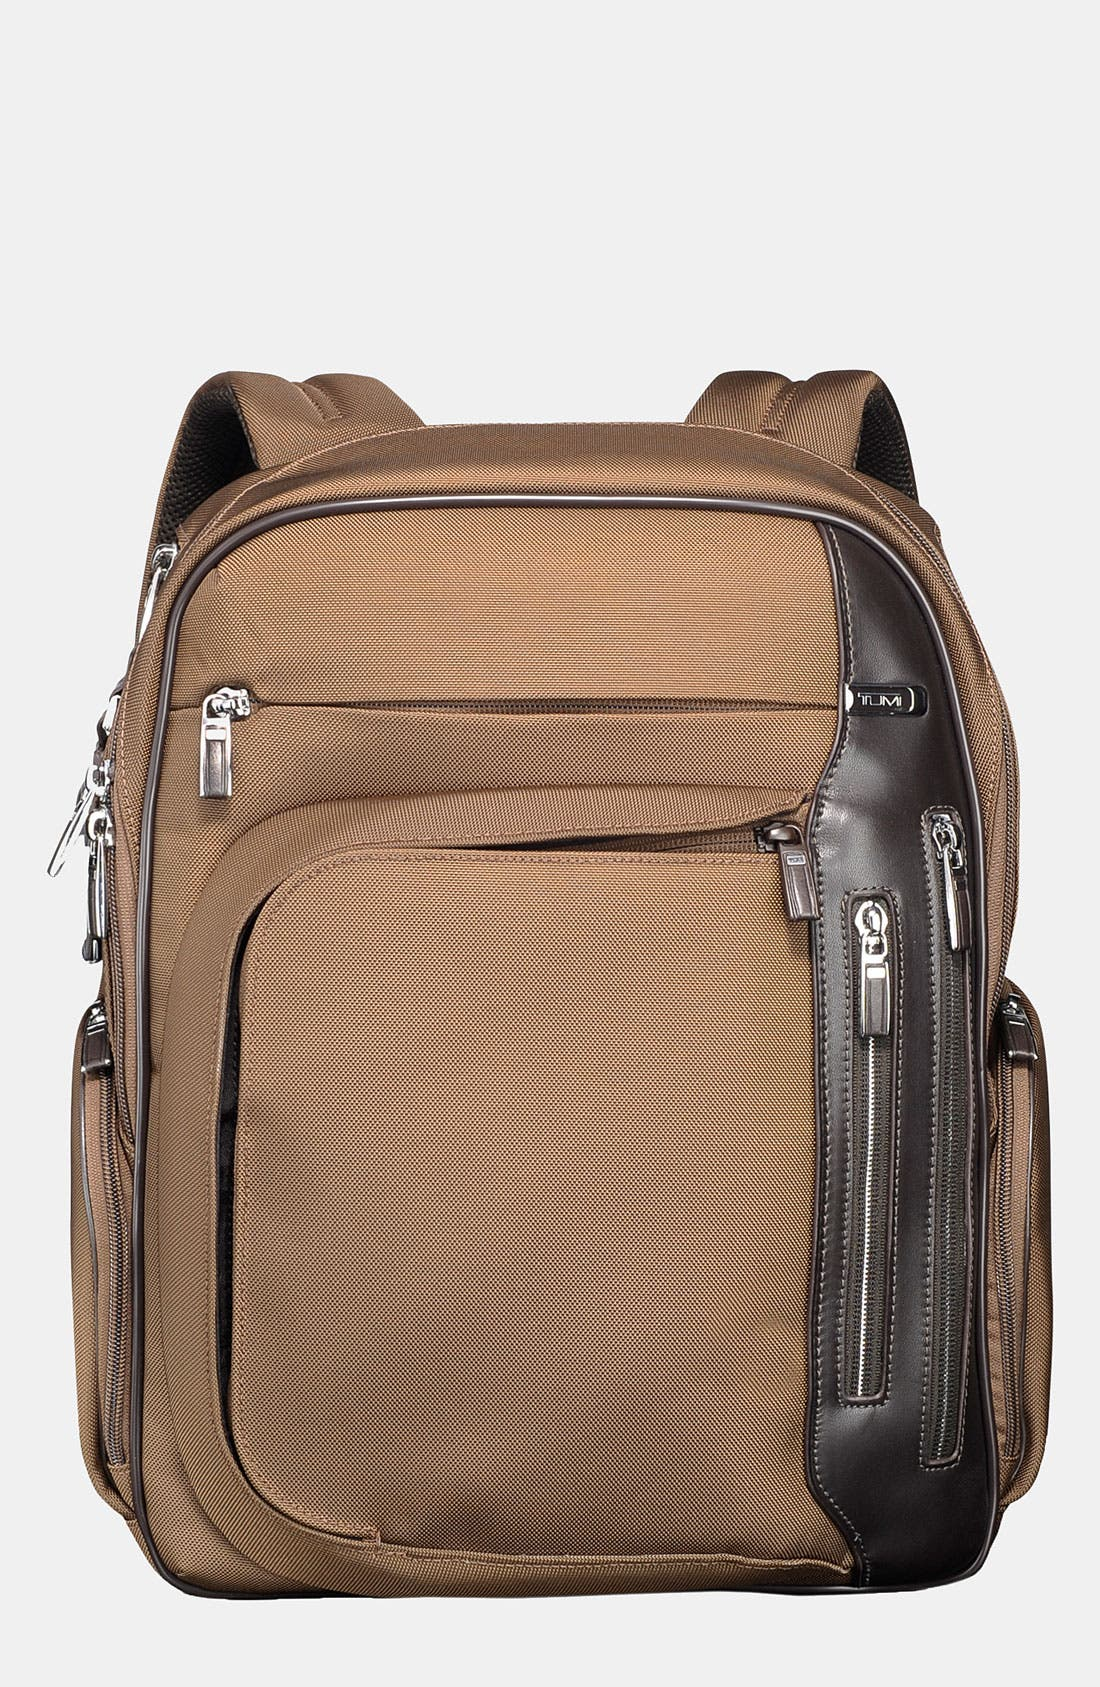 Main Image - Tumi 'Arrive - Kingsford' Backpack